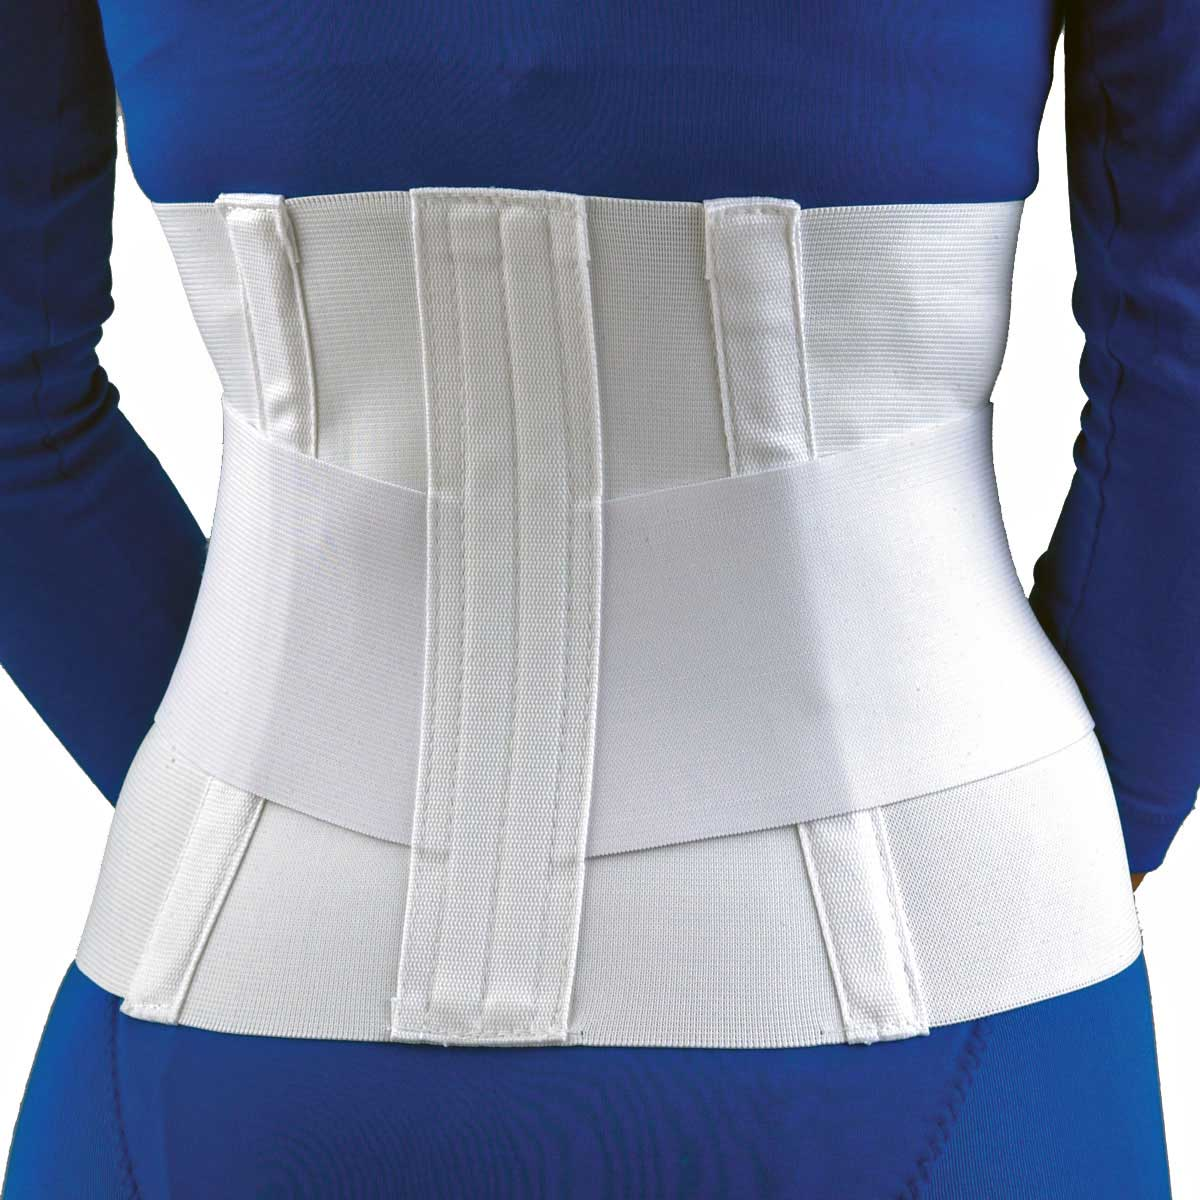 FLA Lumbar Sacral Support with Abdominal Belt-Universal